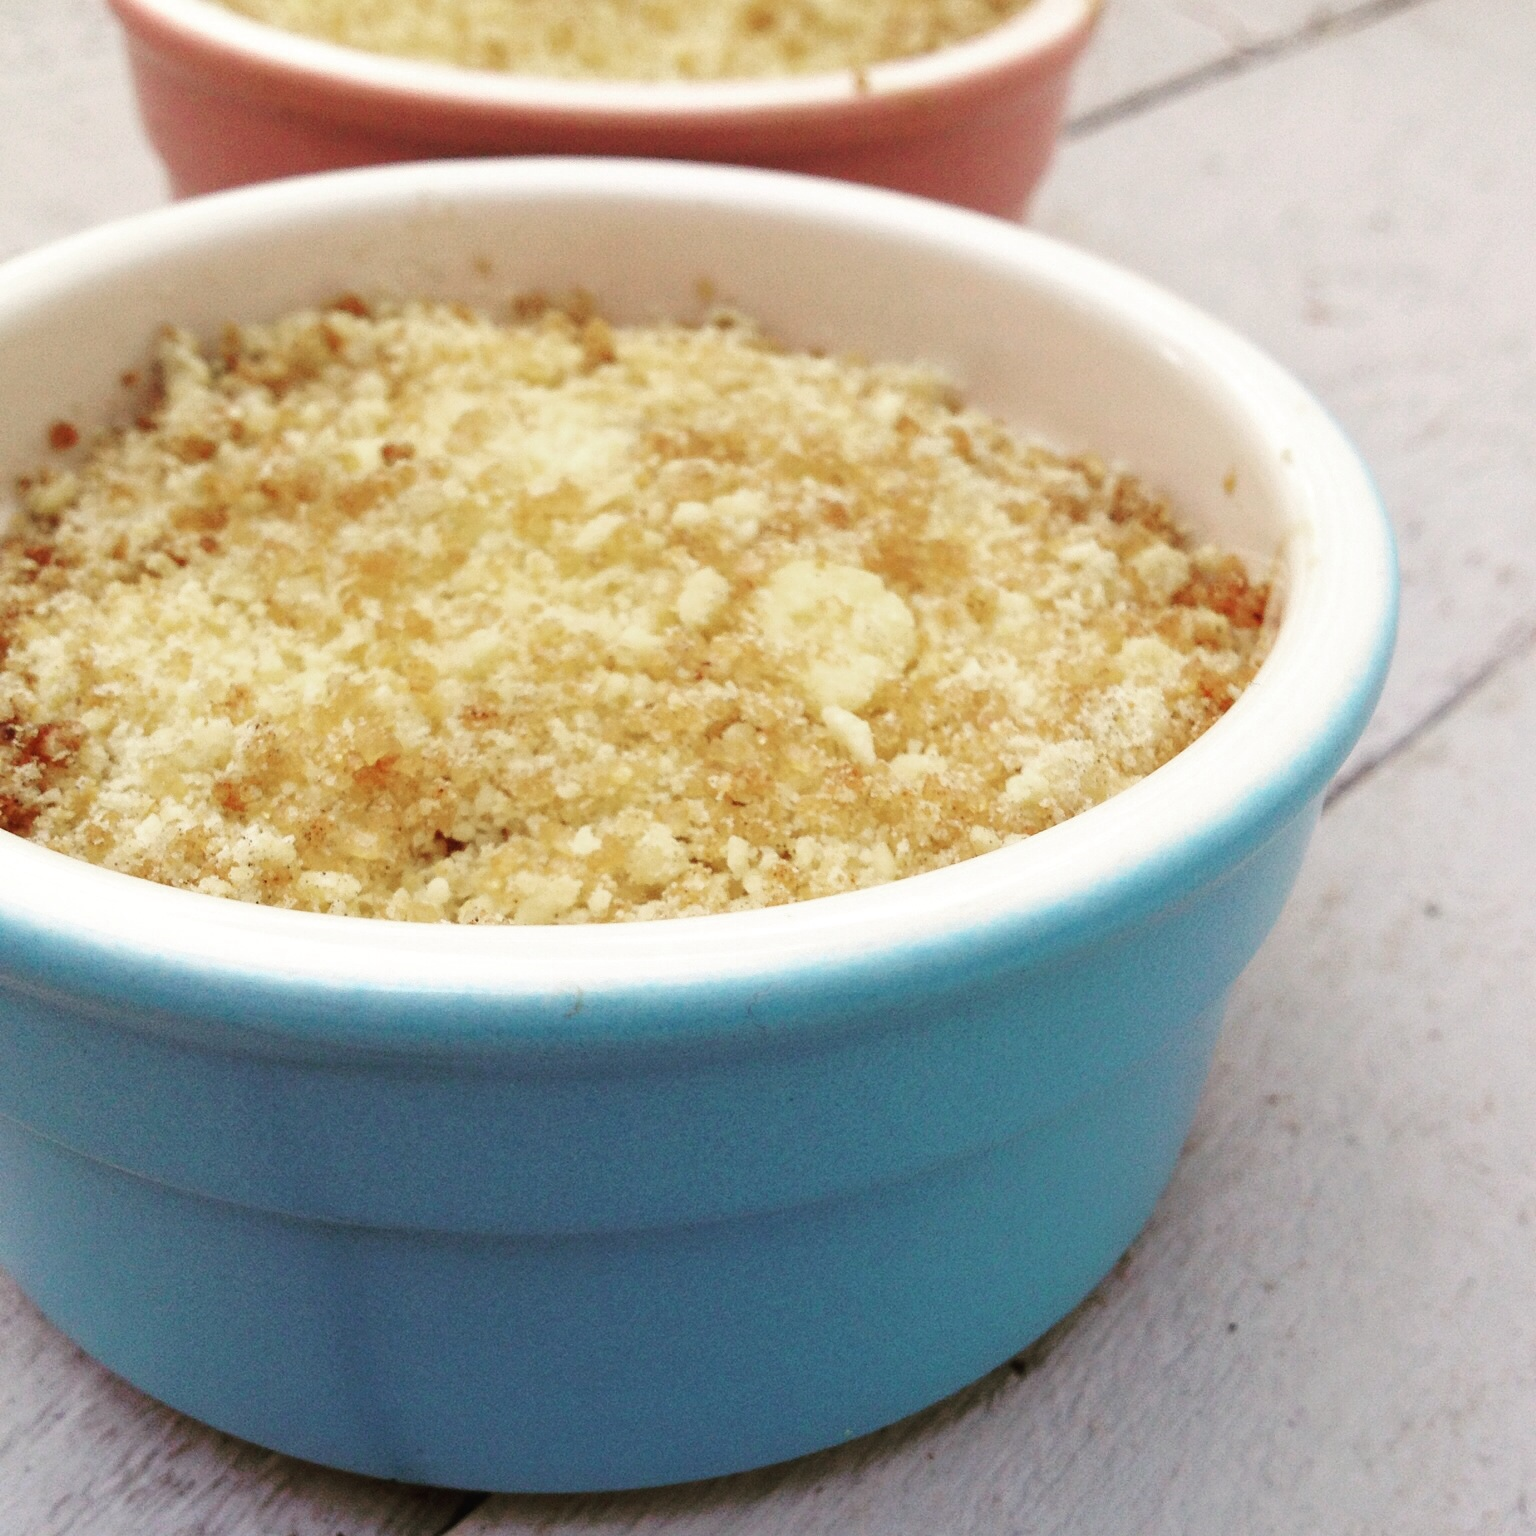 Apple and carrot gluten free crumble